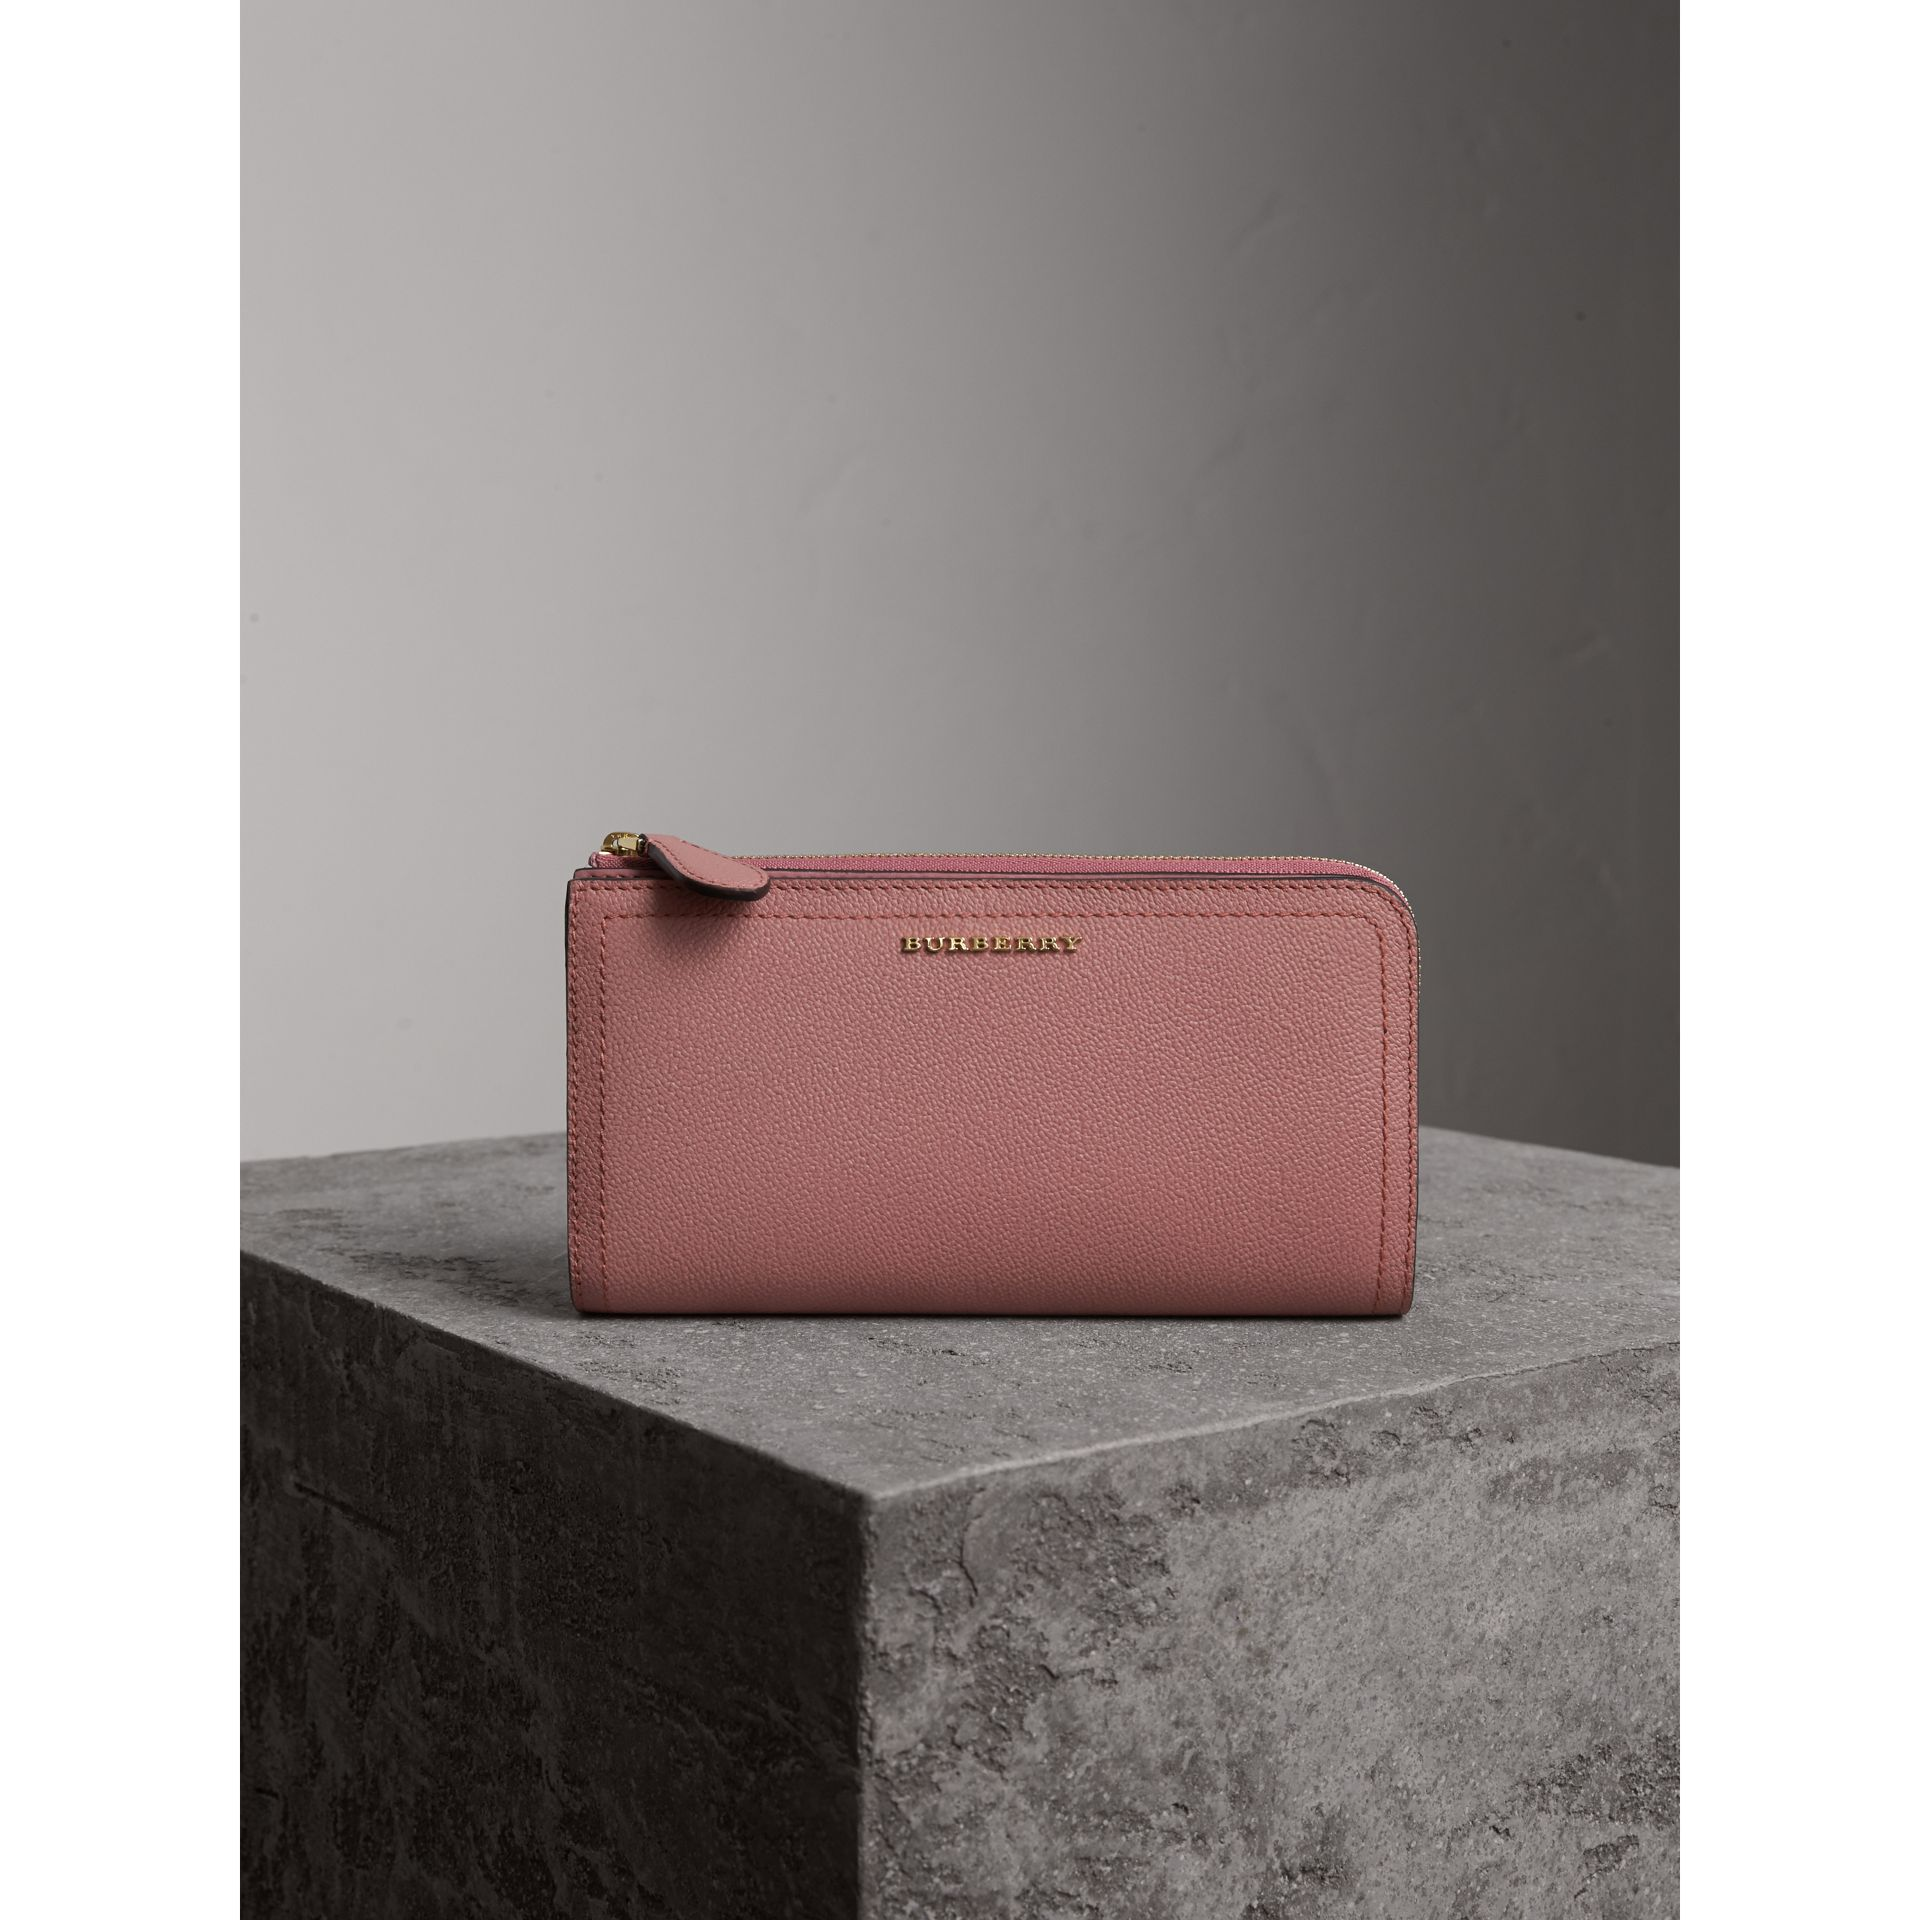 Grainy Leather Ziparound Wallet in Dusty Pink - Women | Burberry United States - gallery image 6